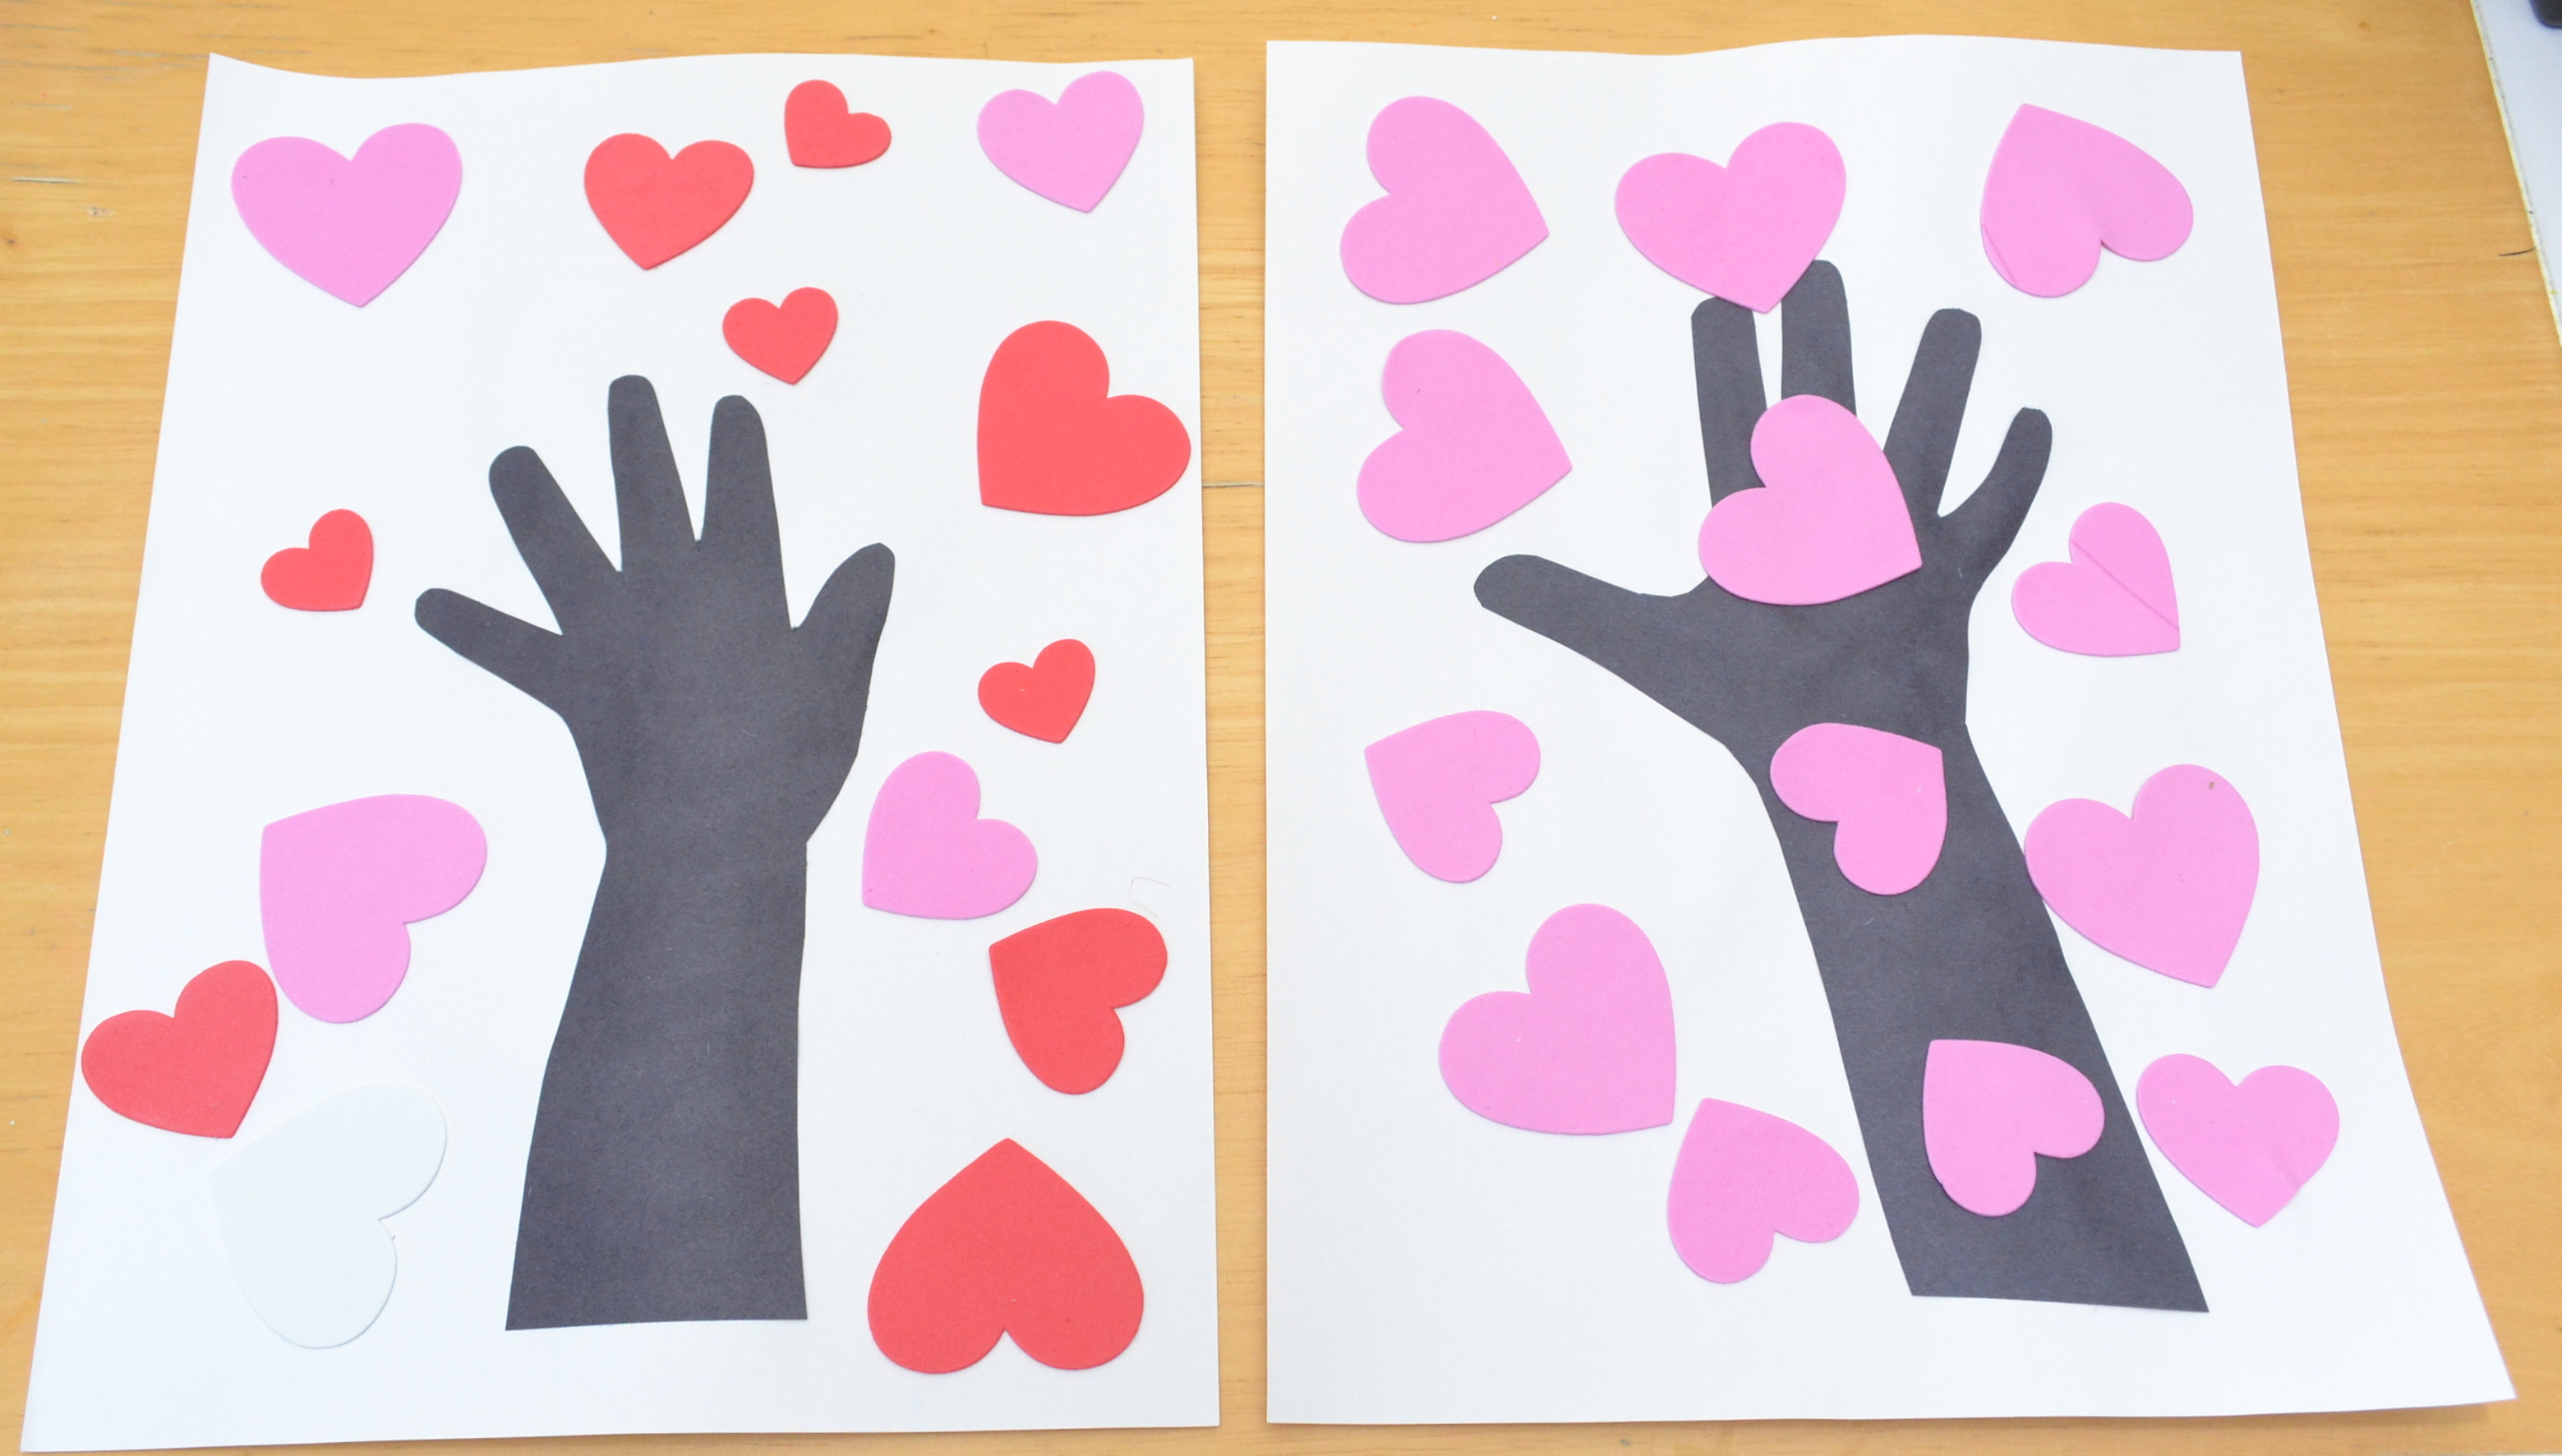 Best ideas about Valentine Arts And Crafts For Preschoolers . Save or Pin 10 Valentines Day Crafts For Preschoolers Now.